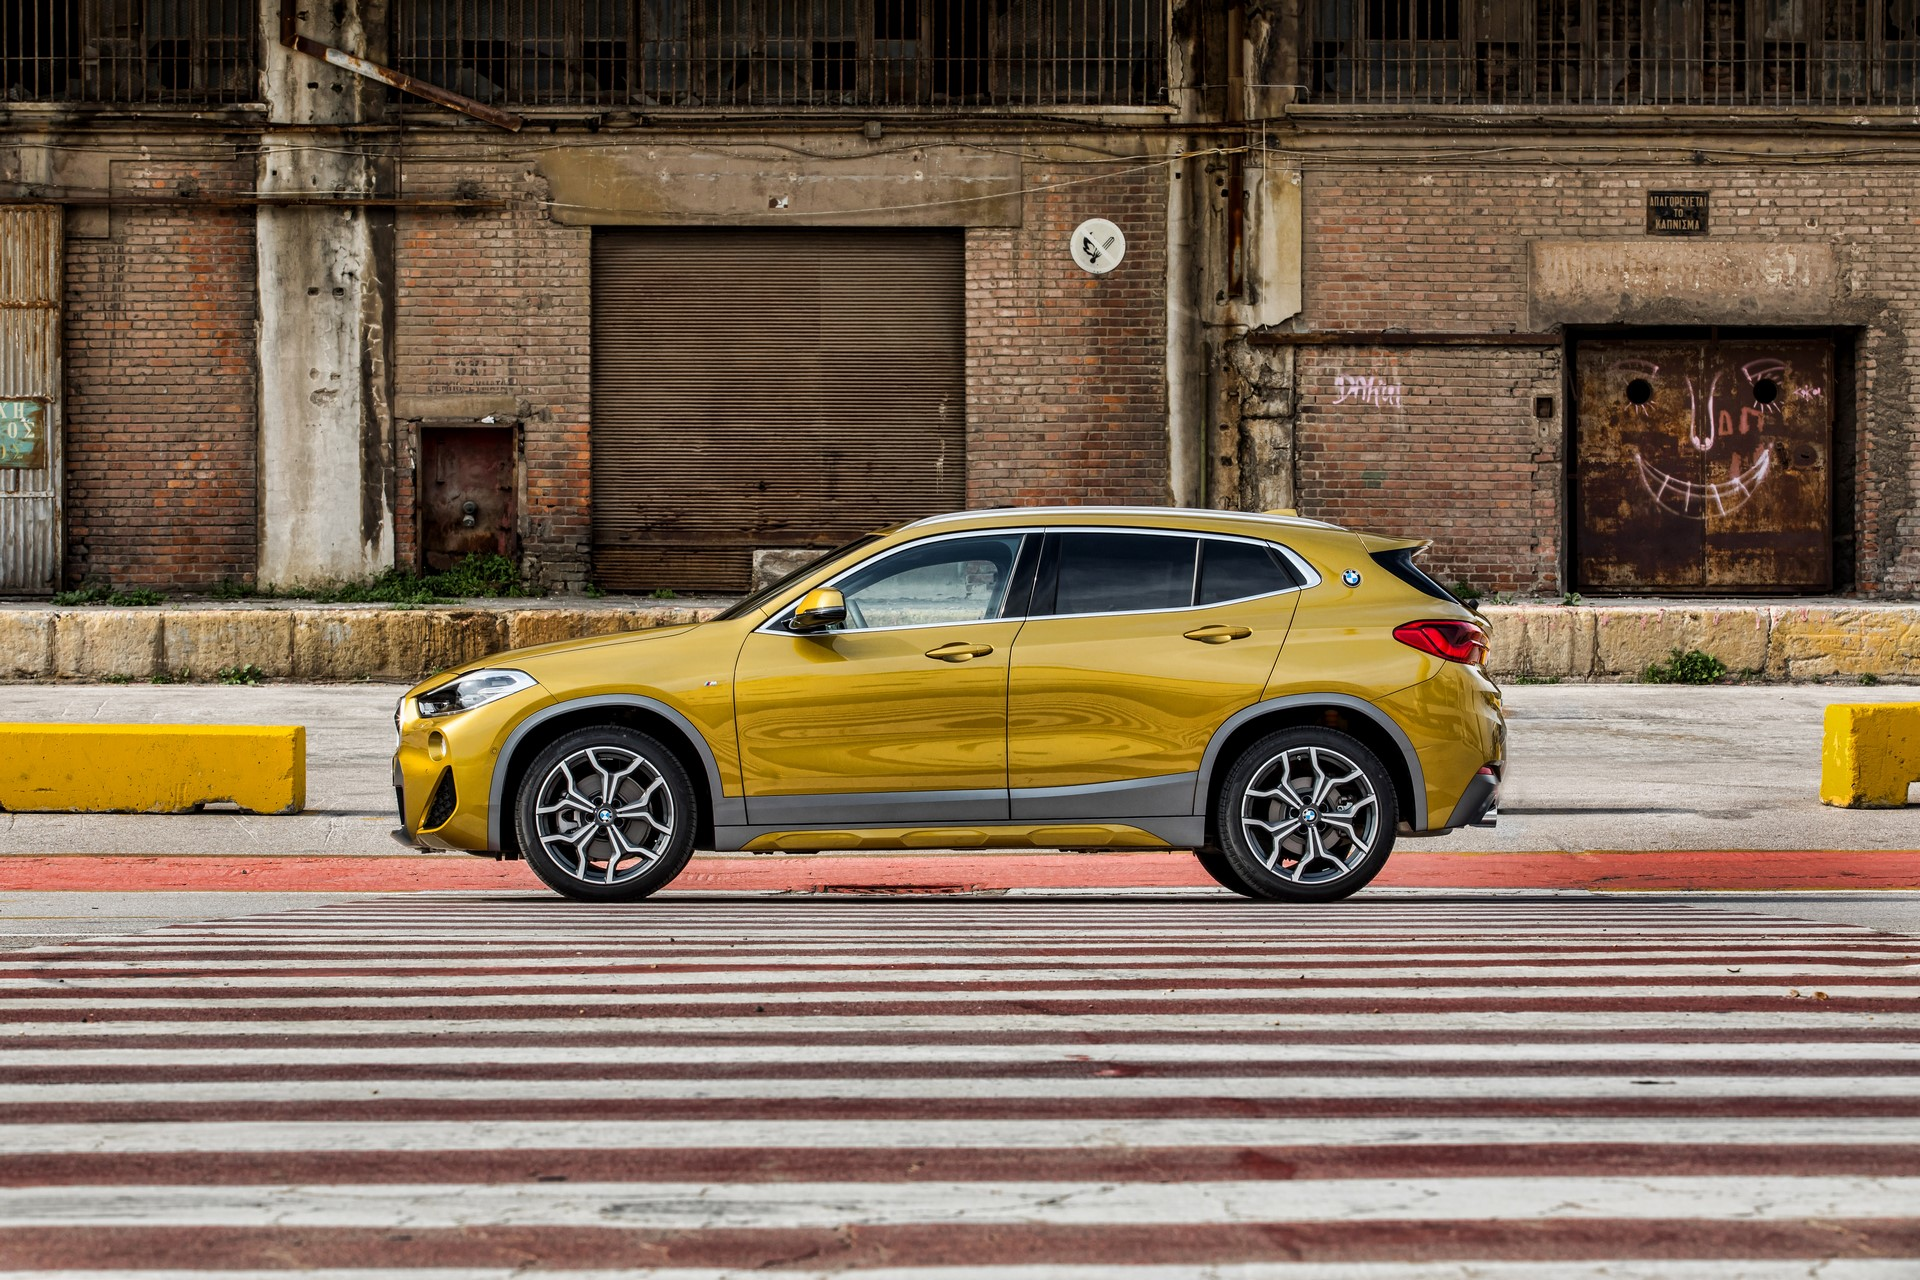 BMW X2 Greek 2018 (3)